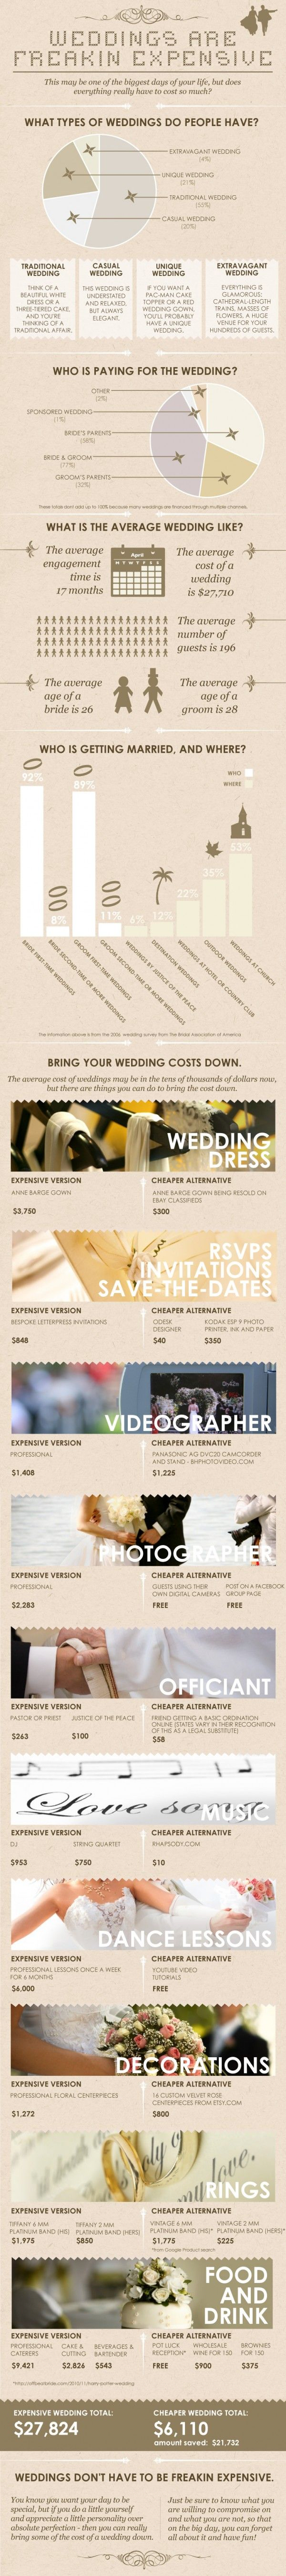 best 25 average wedding costs ideas on pinterest wedding costs wedding cost breakdown and wedding budget plans